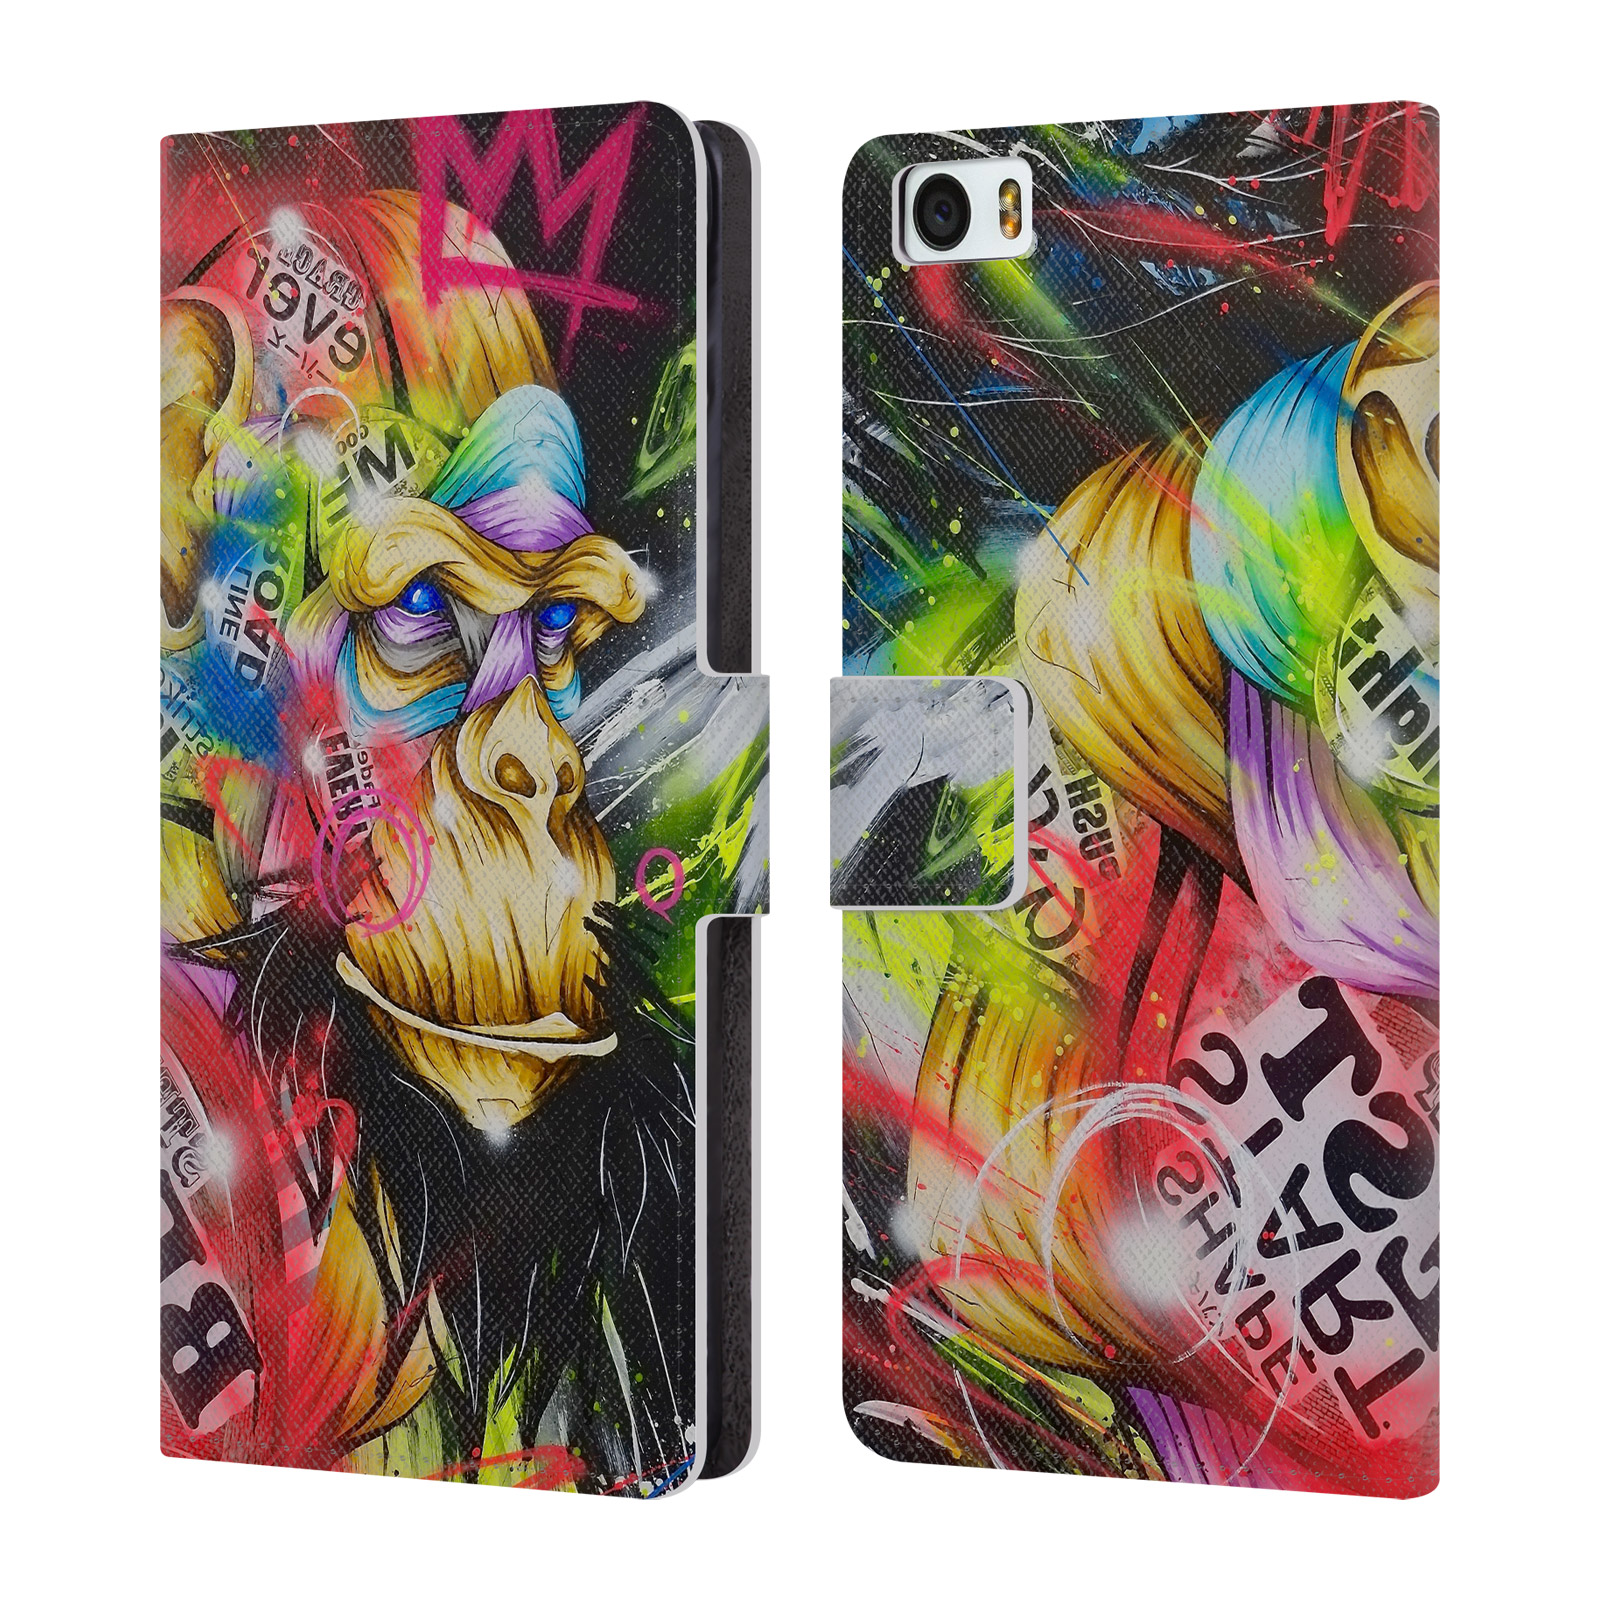 OFFICIAL-TAKA-SUDO-PRIMATES-LEATHER-BOOK-WALLET-CASE-COVER-FOR-XIAOMI-PHONES